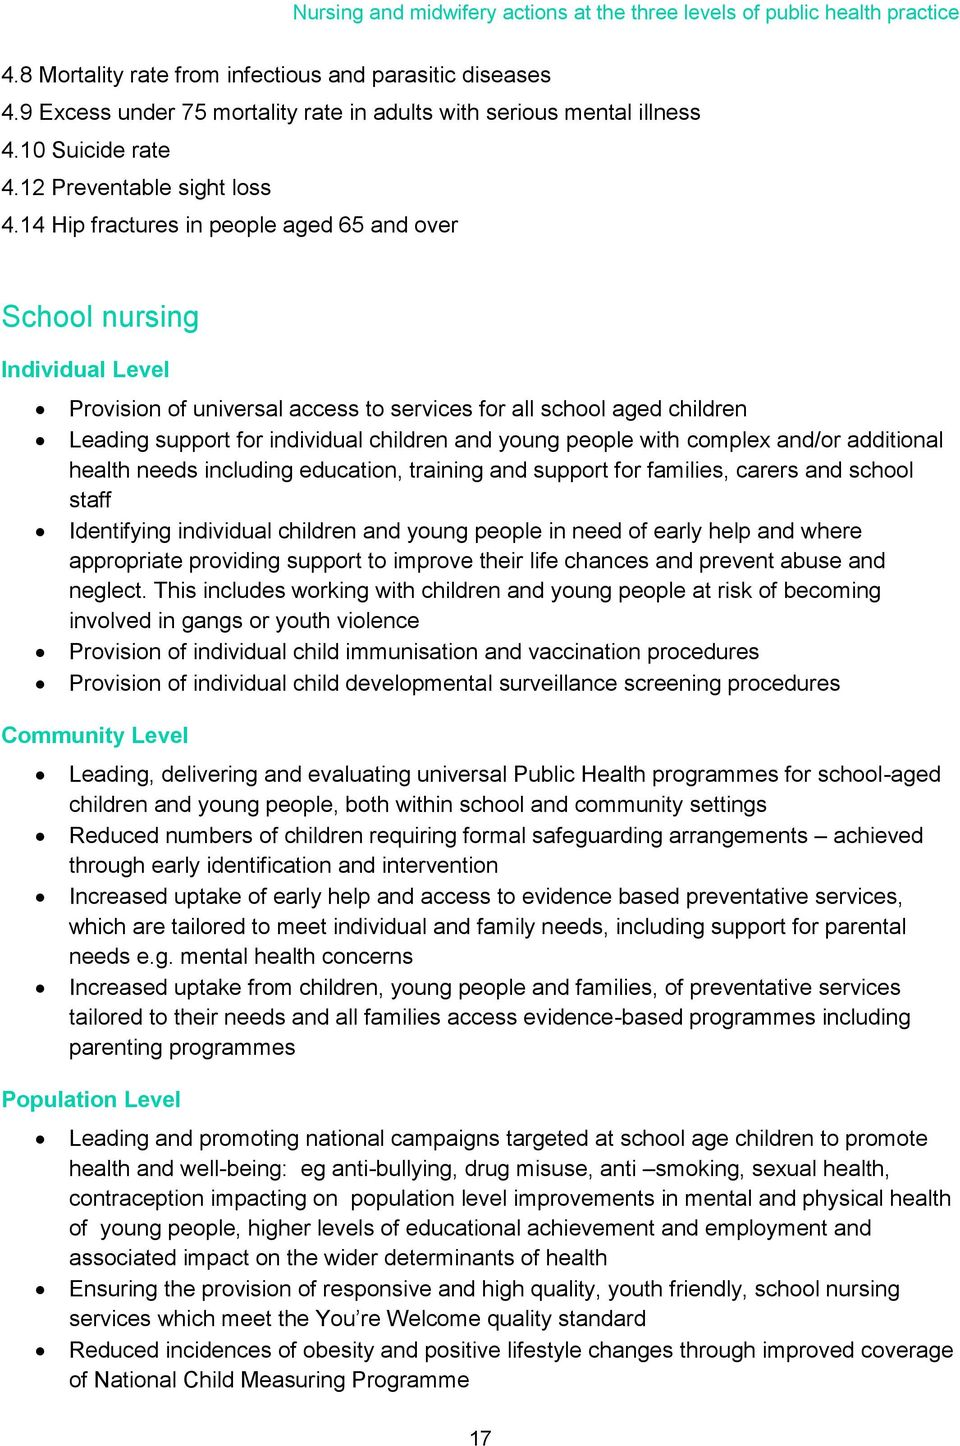 14 Hip fractures in people aged 65 and over School nursing Provision of universal access to services for all school aged children Leading support for individual children and young people with complex